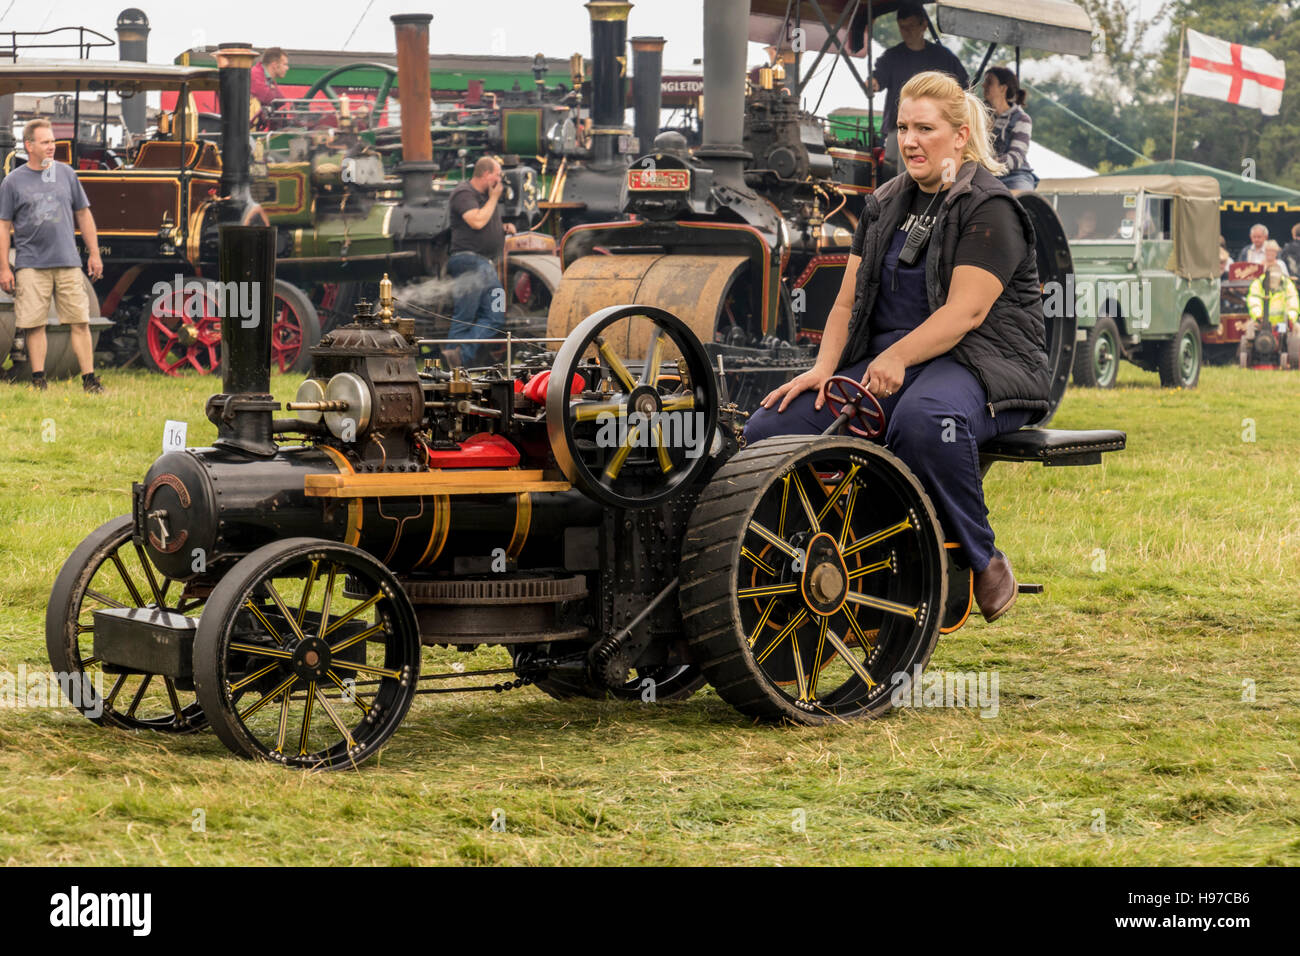 Miniature steam traction engine on display to public at Astle Park Traction Engine Rally Chelford Cheshire England - Stock Image